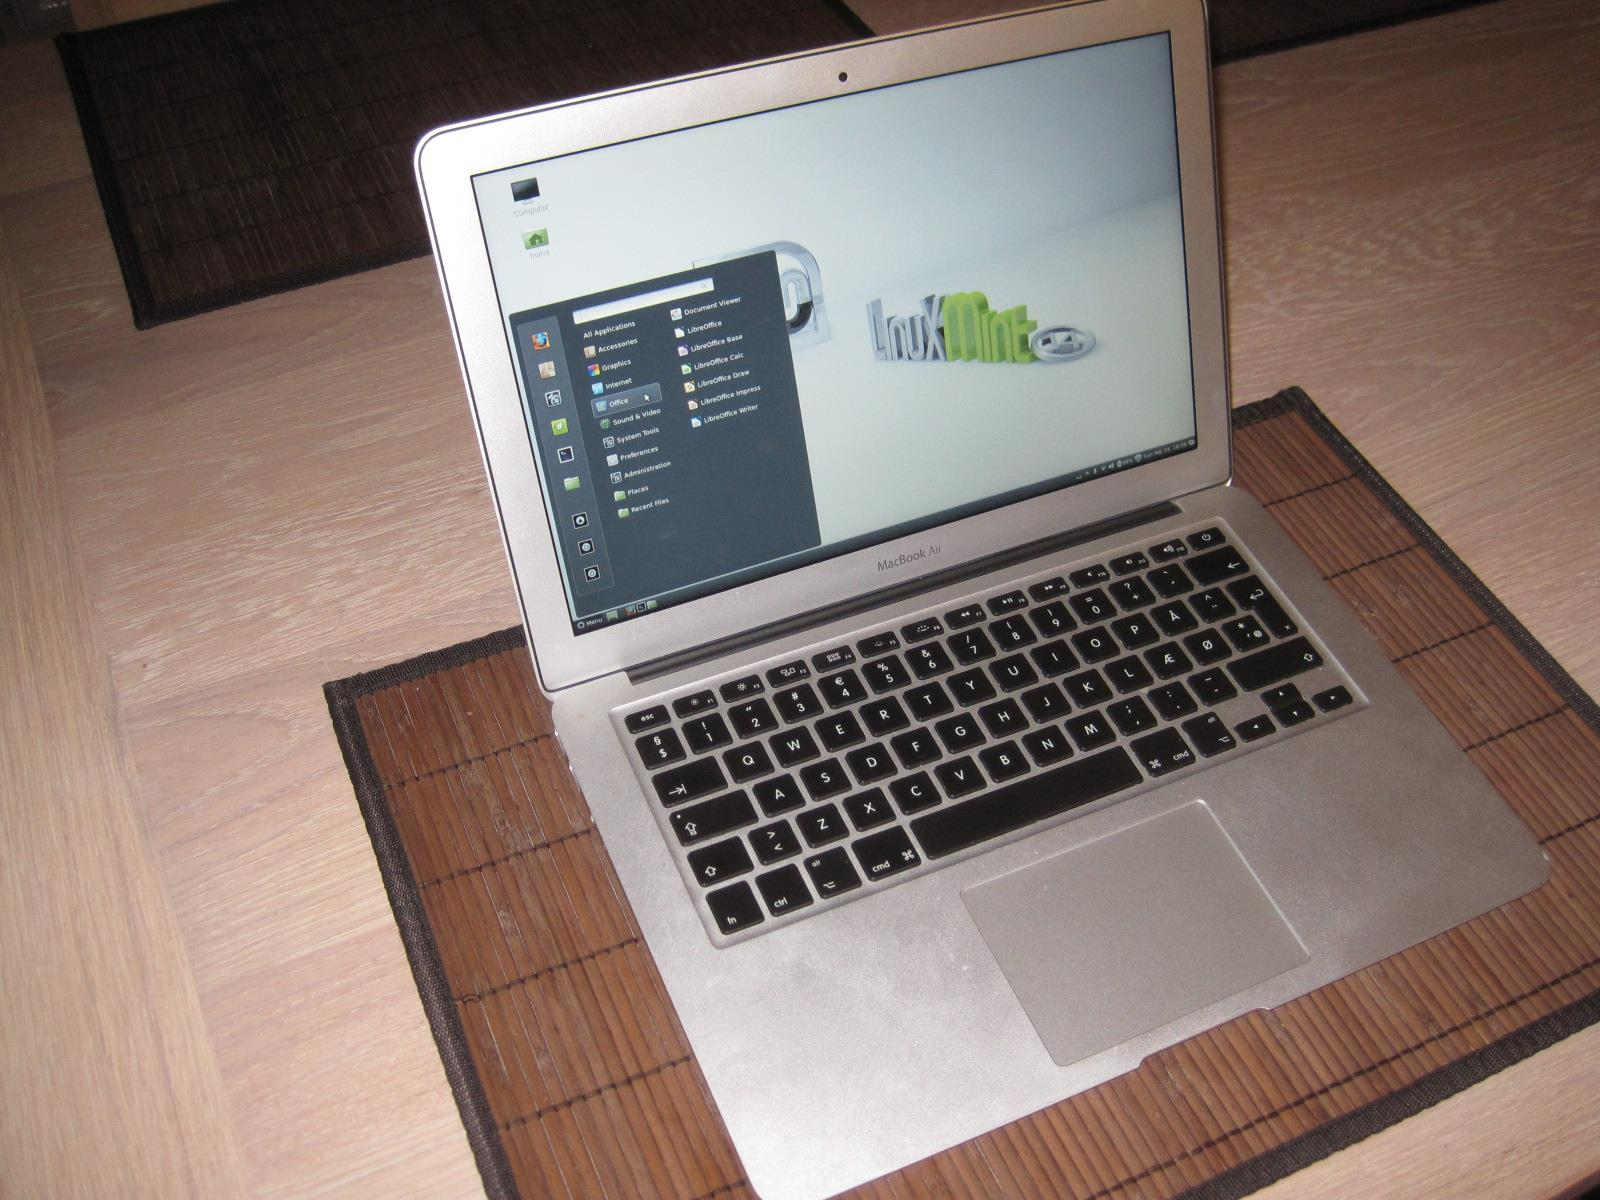 installing linux mint on macbook air